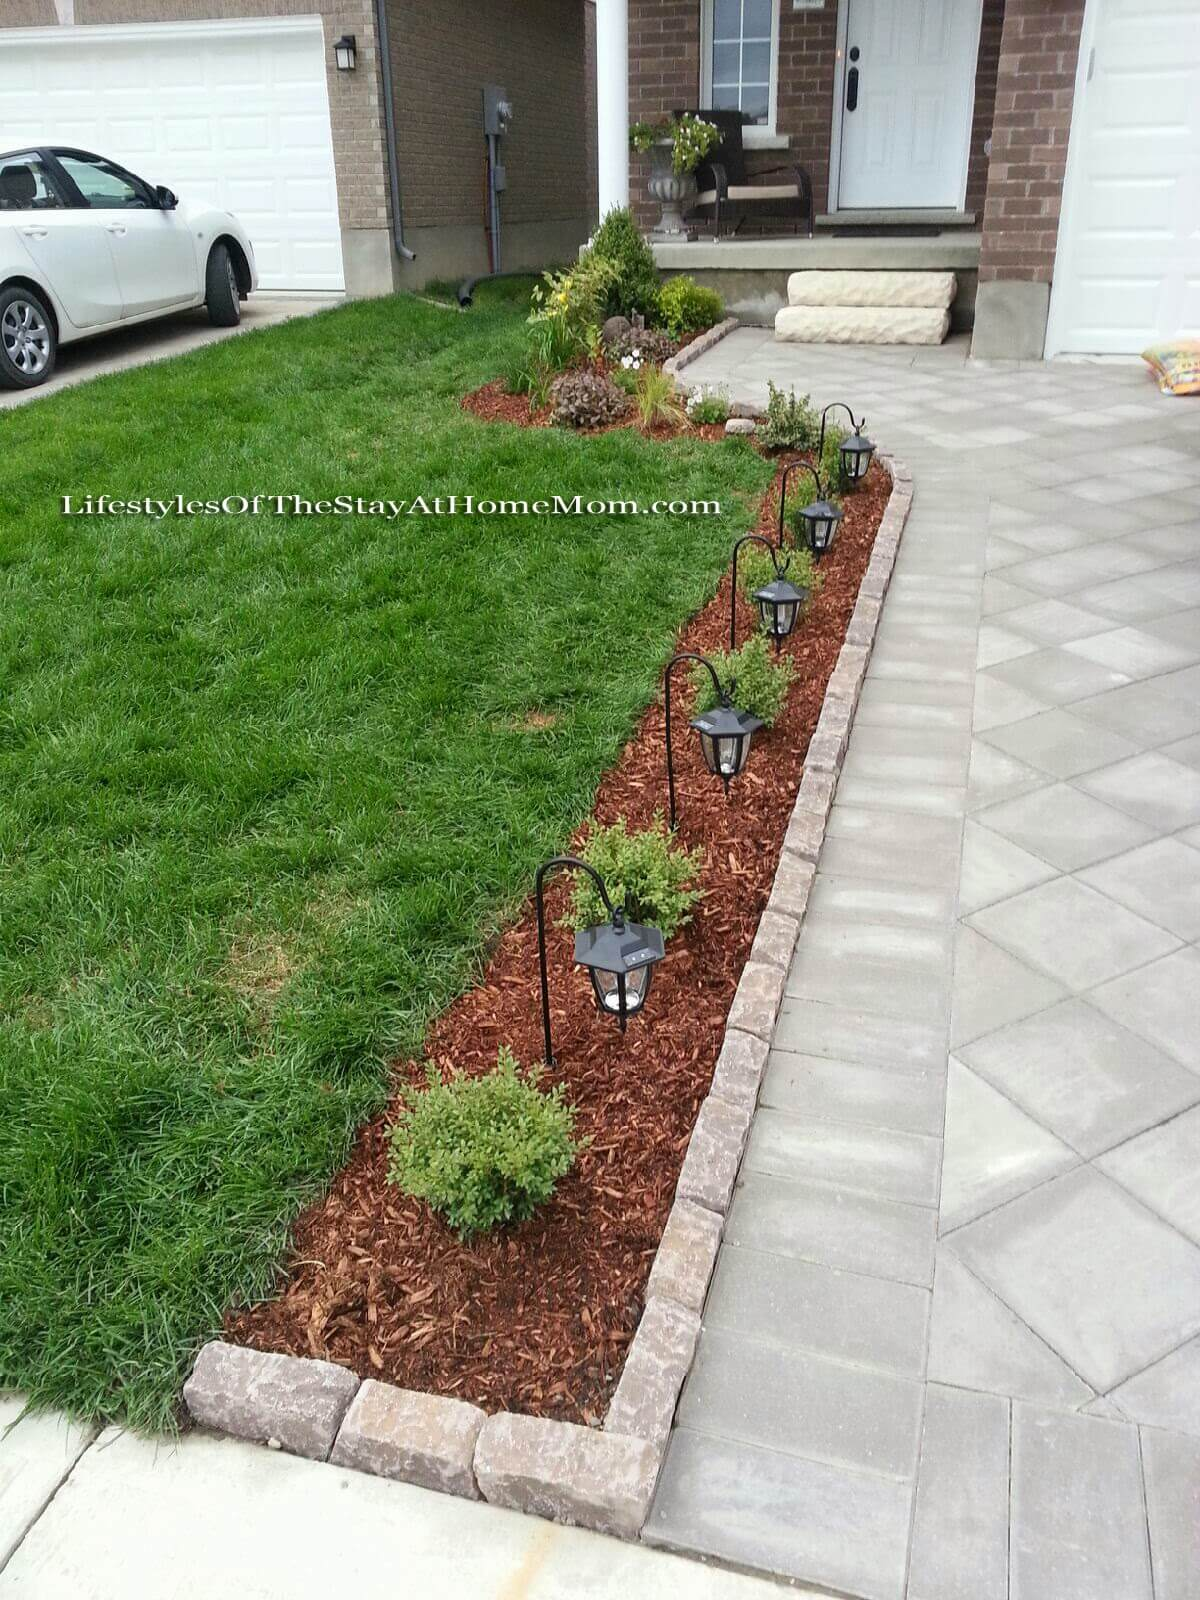 50 Best Front Yard Landscaping Ideas and Garden Designs ... on Patio And Grass Garden Ideas id=49718